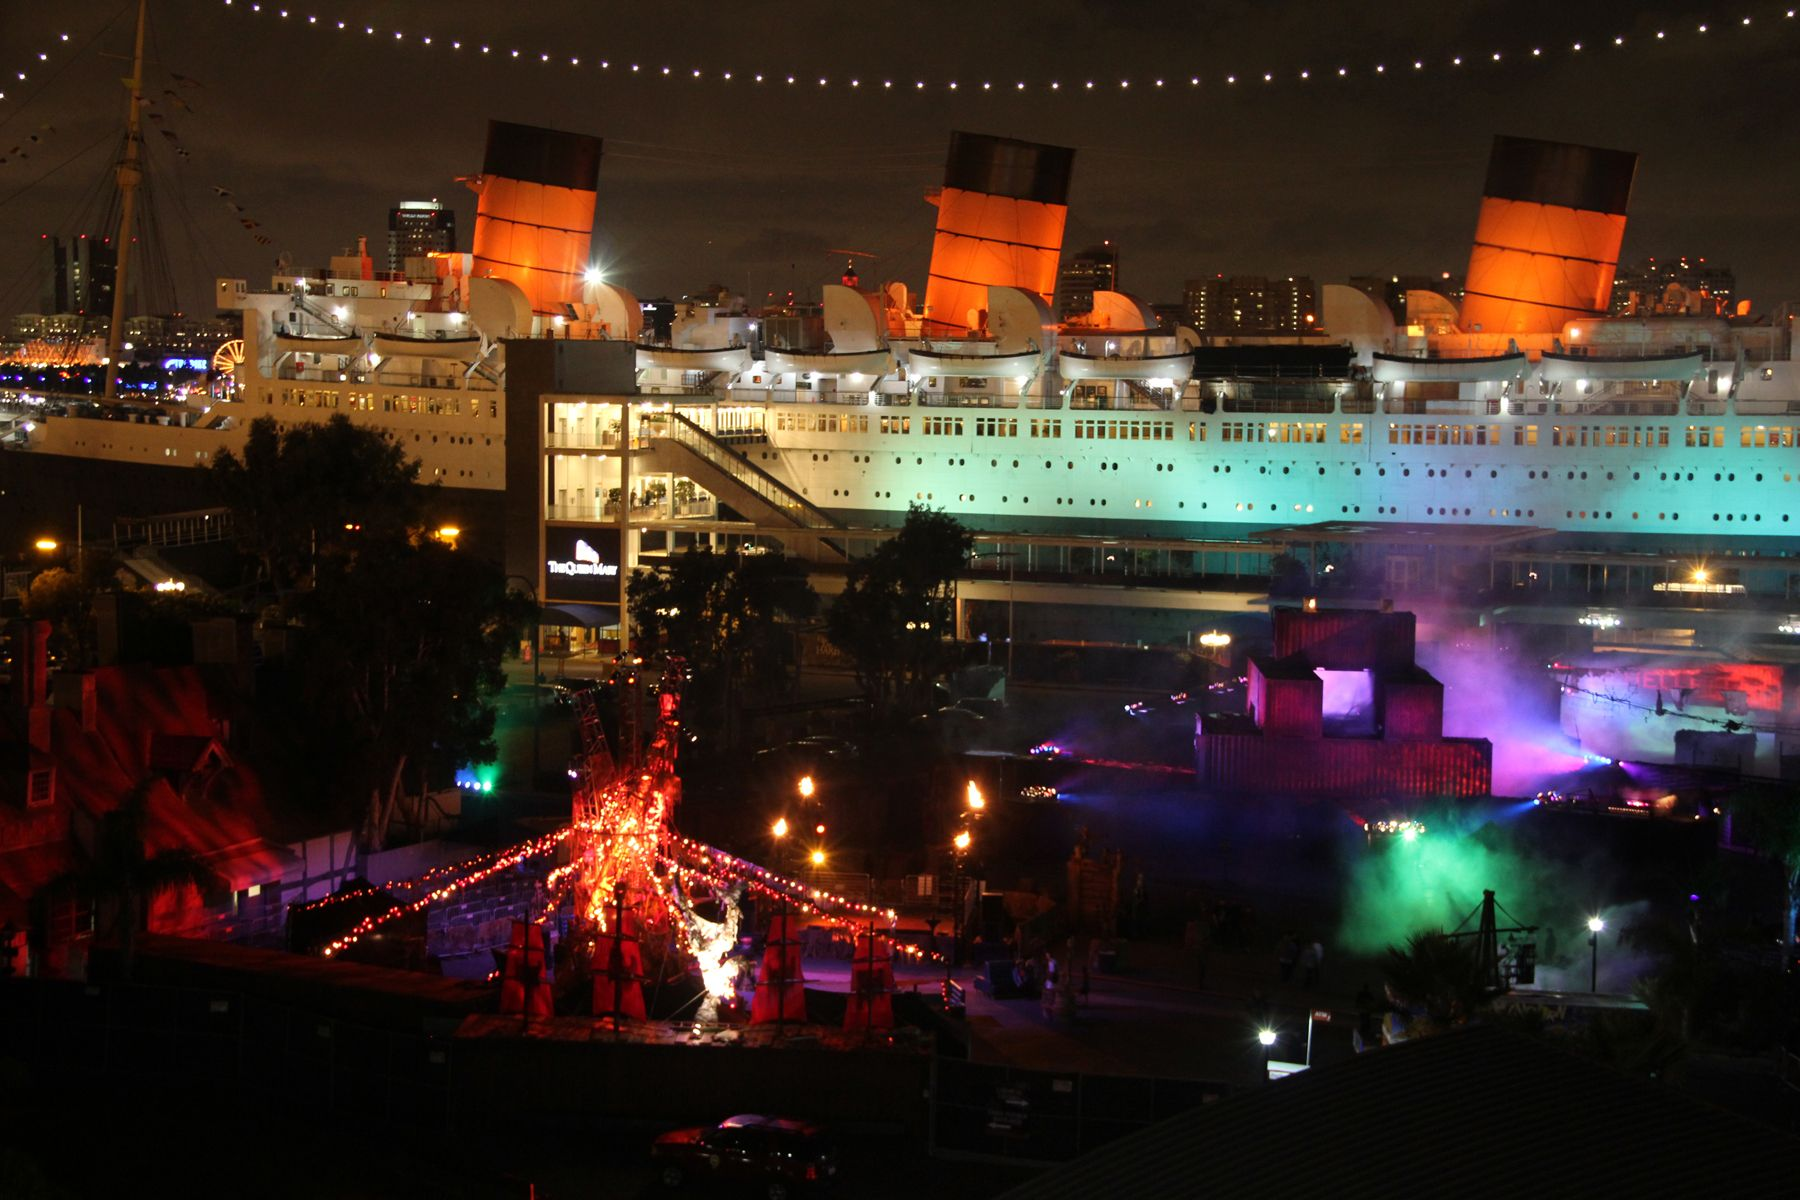 Queen Mary in Long Beach, California. Halloween party time